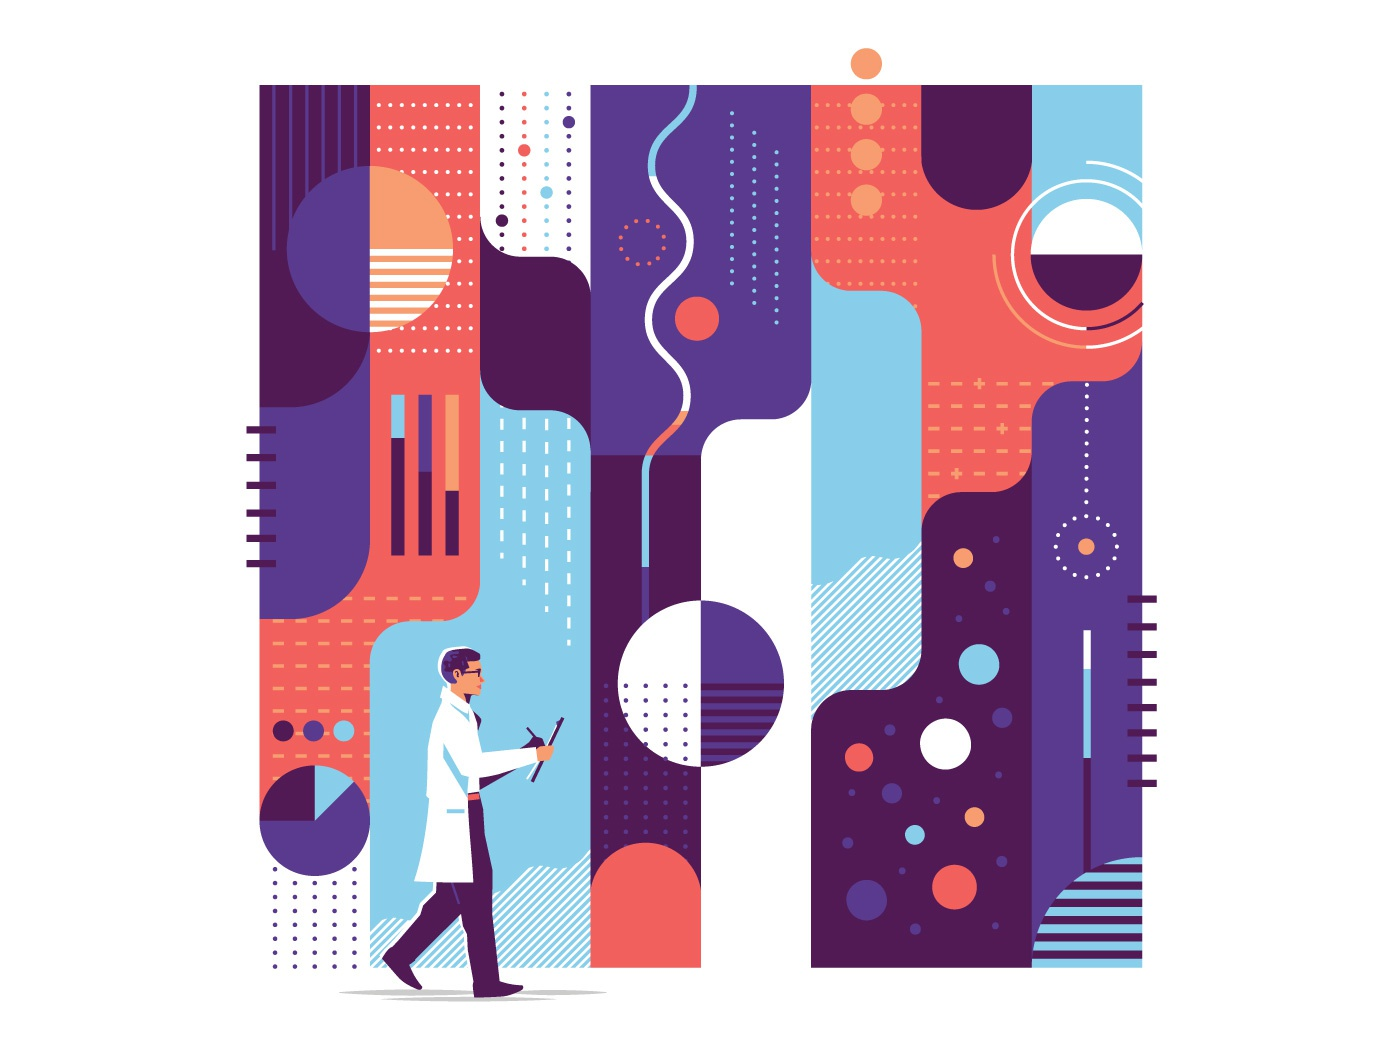 Scientist texture line man flow dot science person pattern analytics data walking abstract